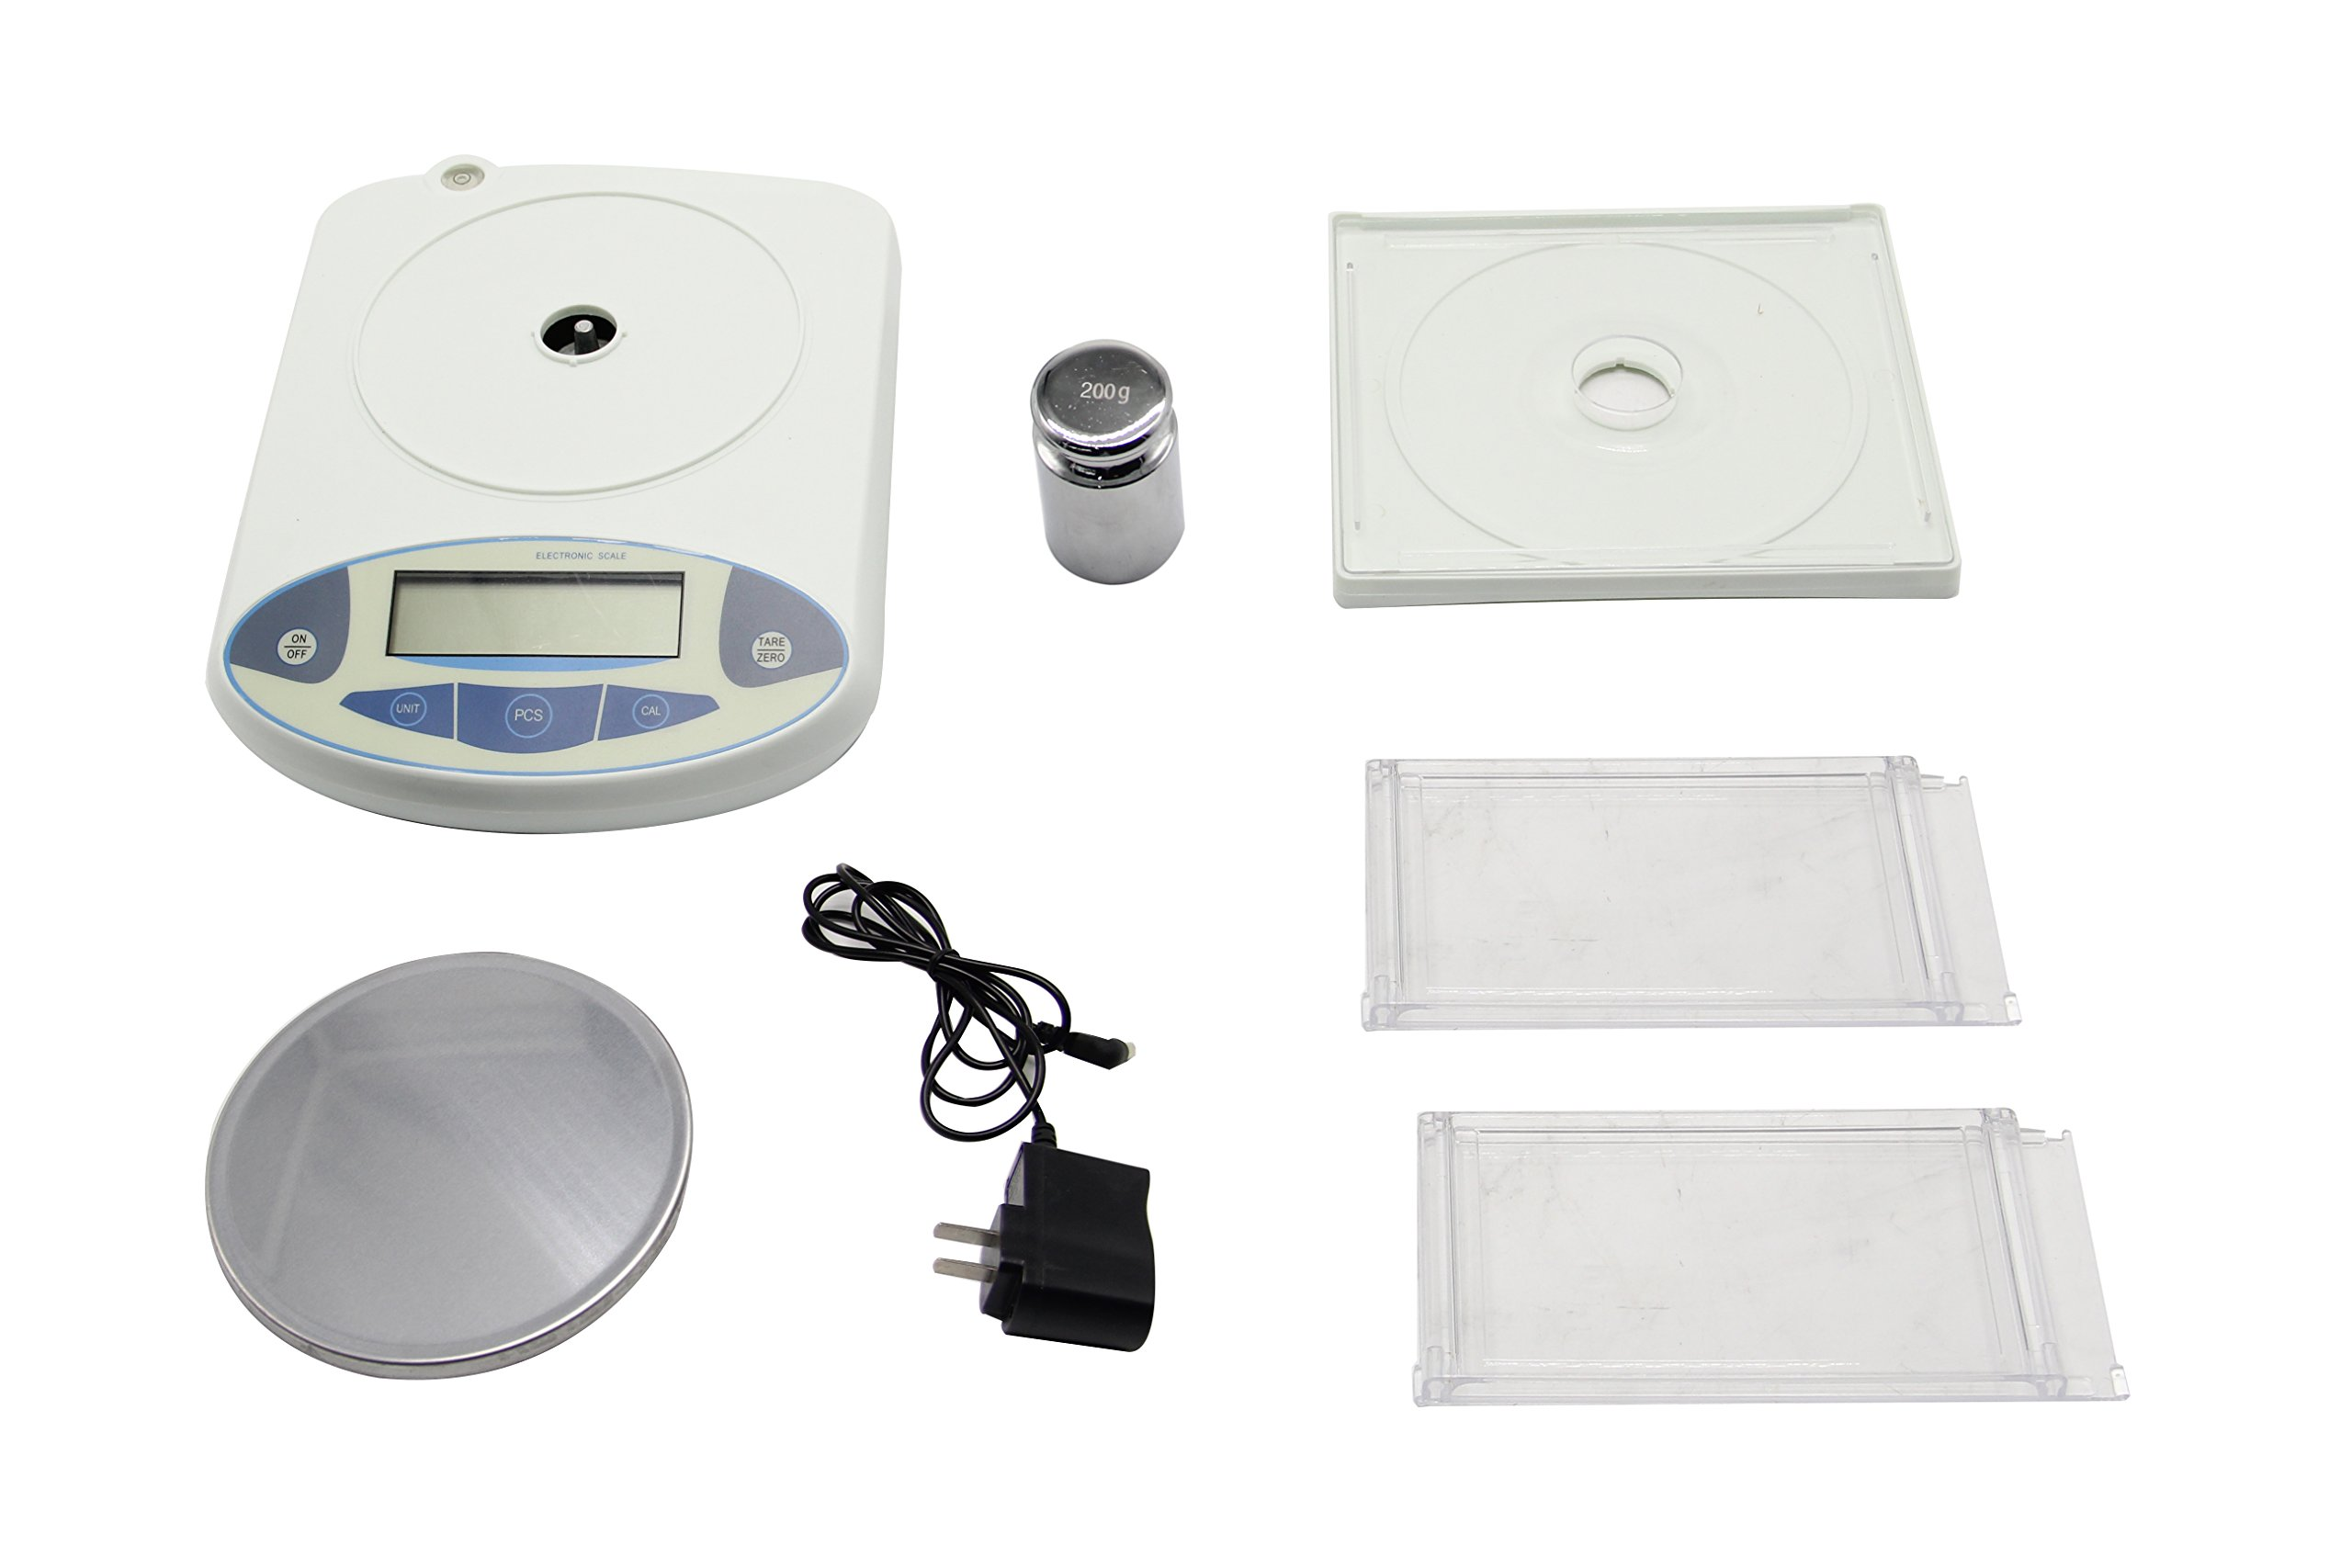 BAOSHISHAN 200g/1mg Lab Scale Precision 0.001g Analytical Electronic Balance Lab Precision Weighing Balance Scales Jewelry Scales Calibrated